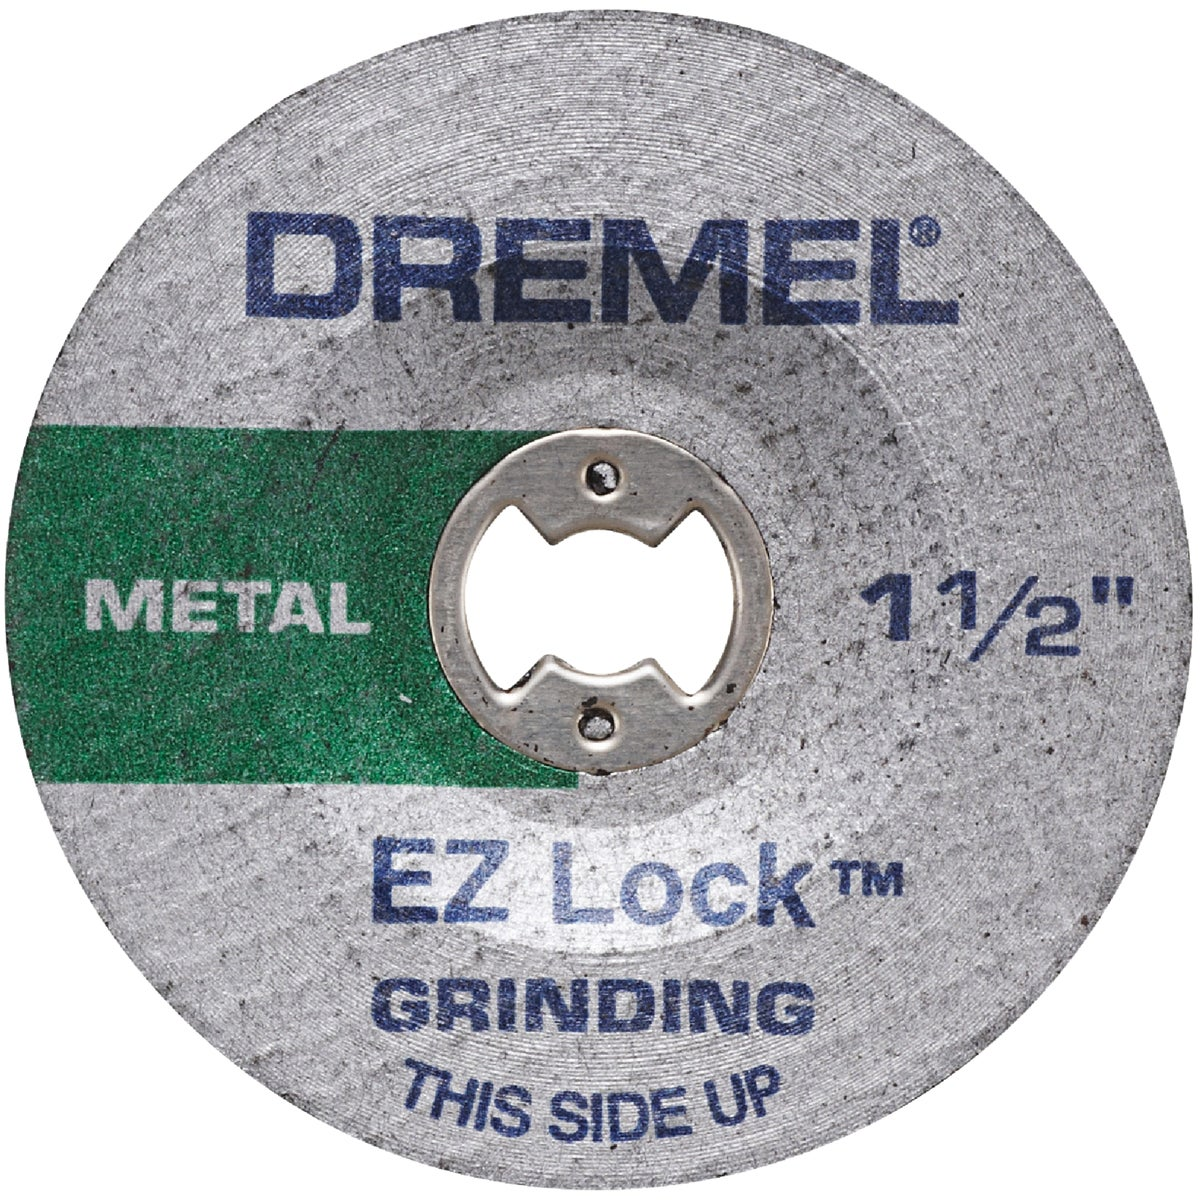 METAL GRINDING WHEEL - EZ541GR by Dremel Mfg Co